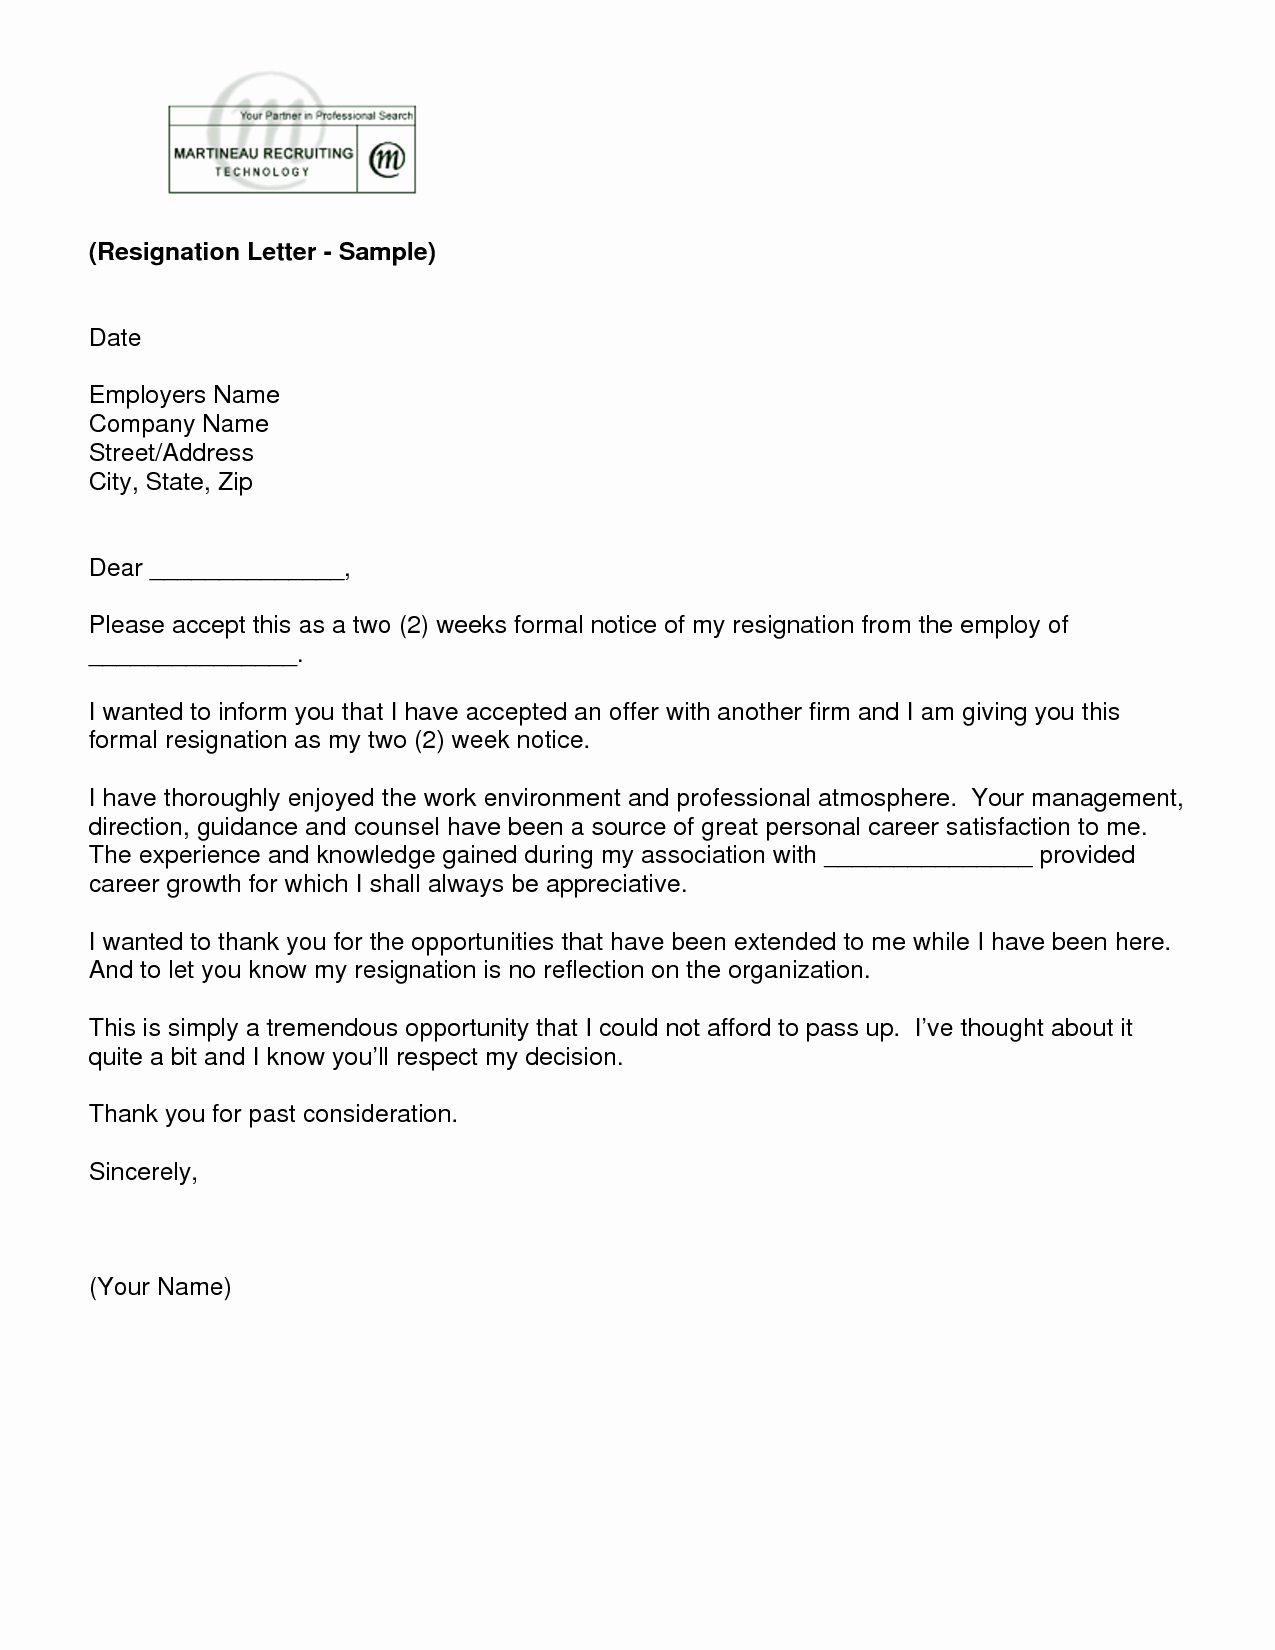 Format for Resignation Letter Best Of Letter Of Resignation 2 Weeks Notice Template